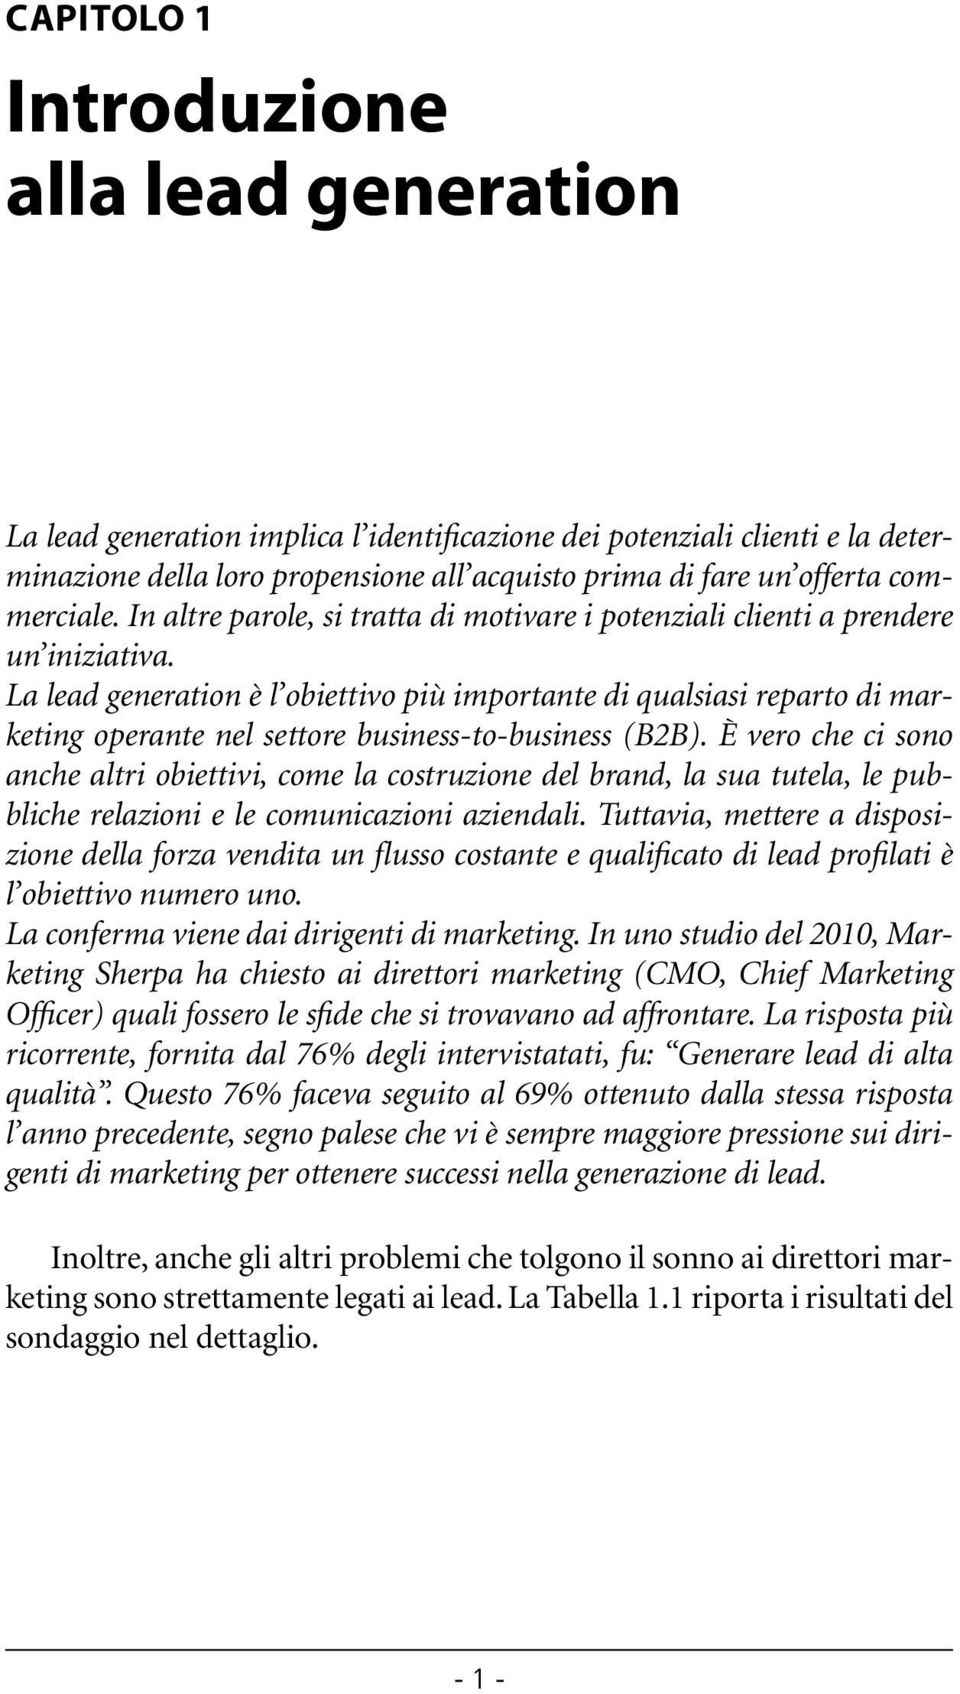 La lead generation è l obiettivo più importante di qualsiasi reparto di marketing operante nel settore business-to-business (B2B).